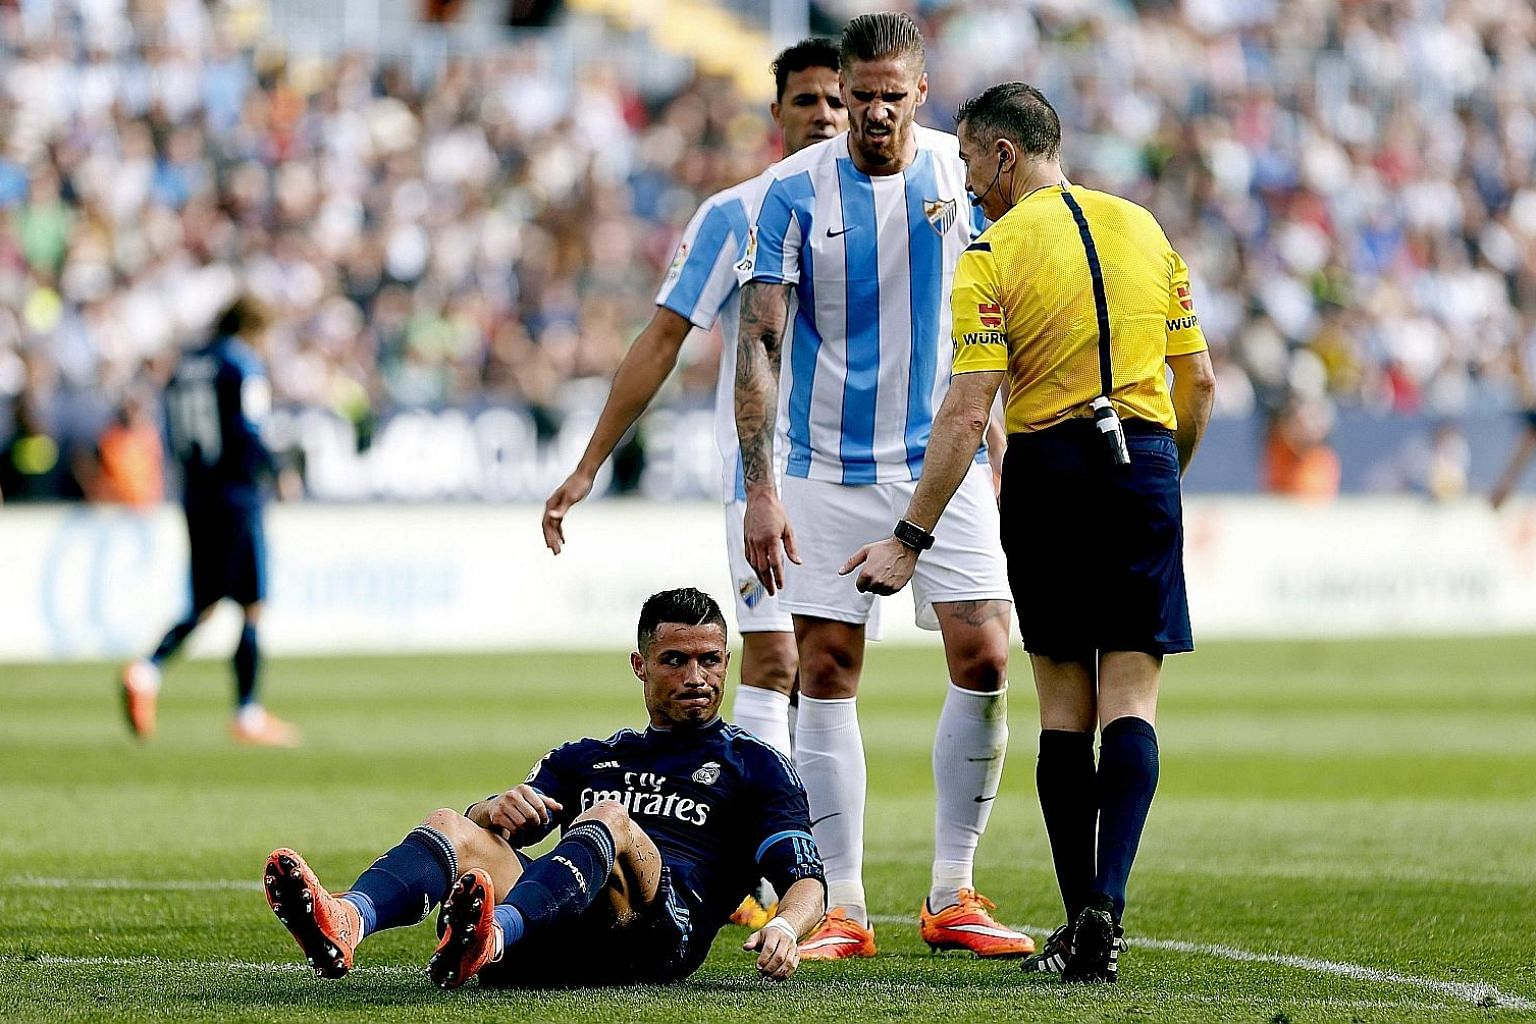 Cristiano Ronaldo after being knocked down by Malaga's Raul Albentosa (centre) during the 1-1 La Liga draw on Sunday.